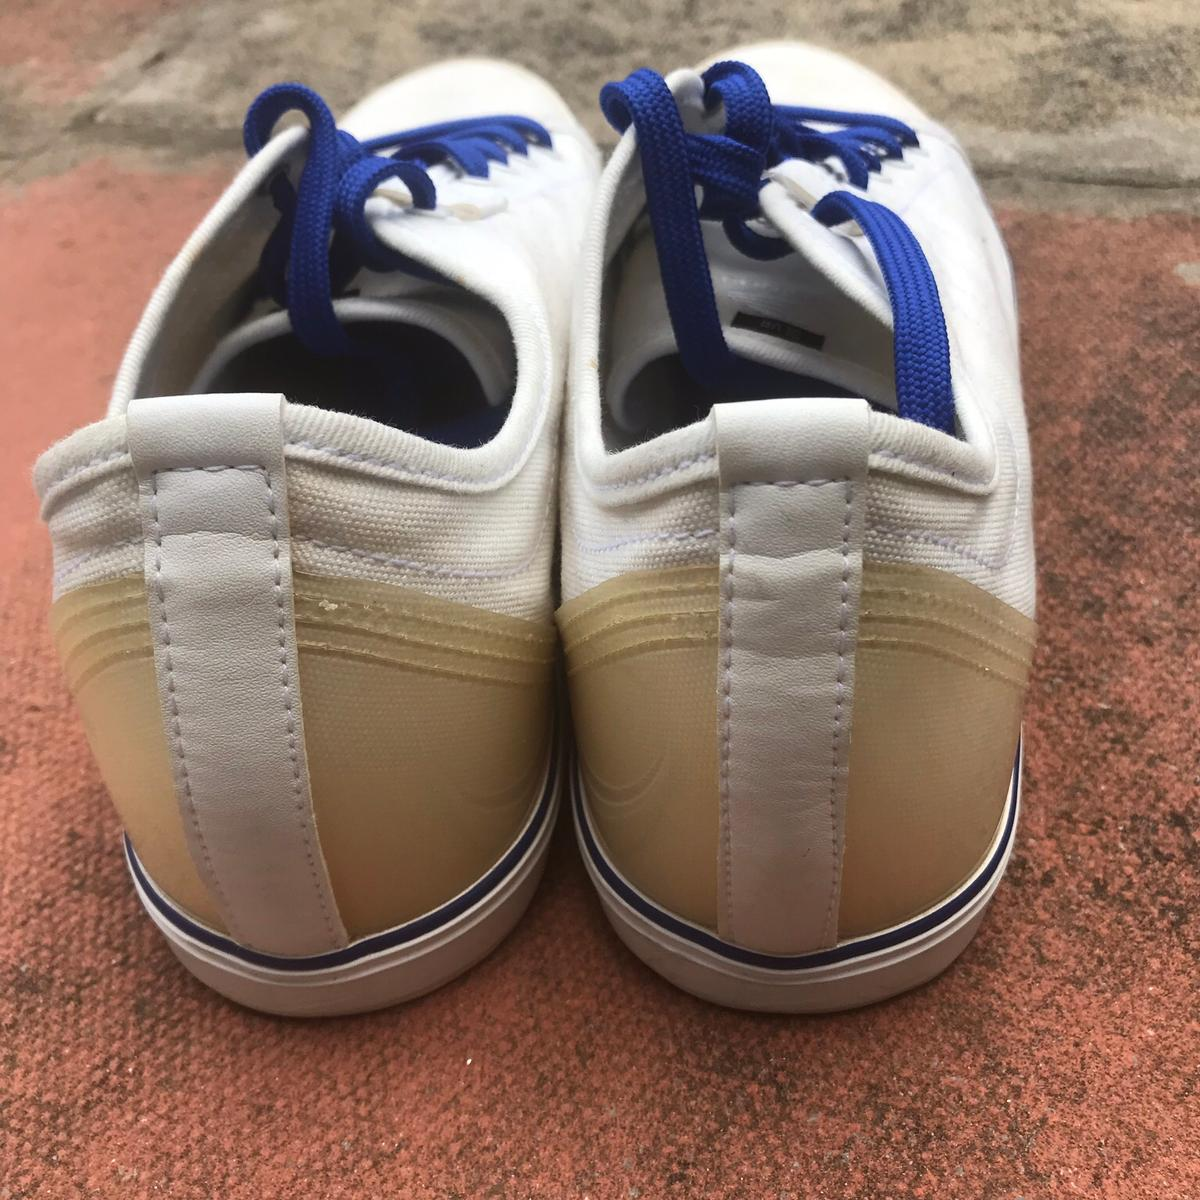 watch 4312a 6d1f8 Adidas SLVR core low trainers uk10 in SW18 Wandsworth for £35.00 for sale -  Shpock